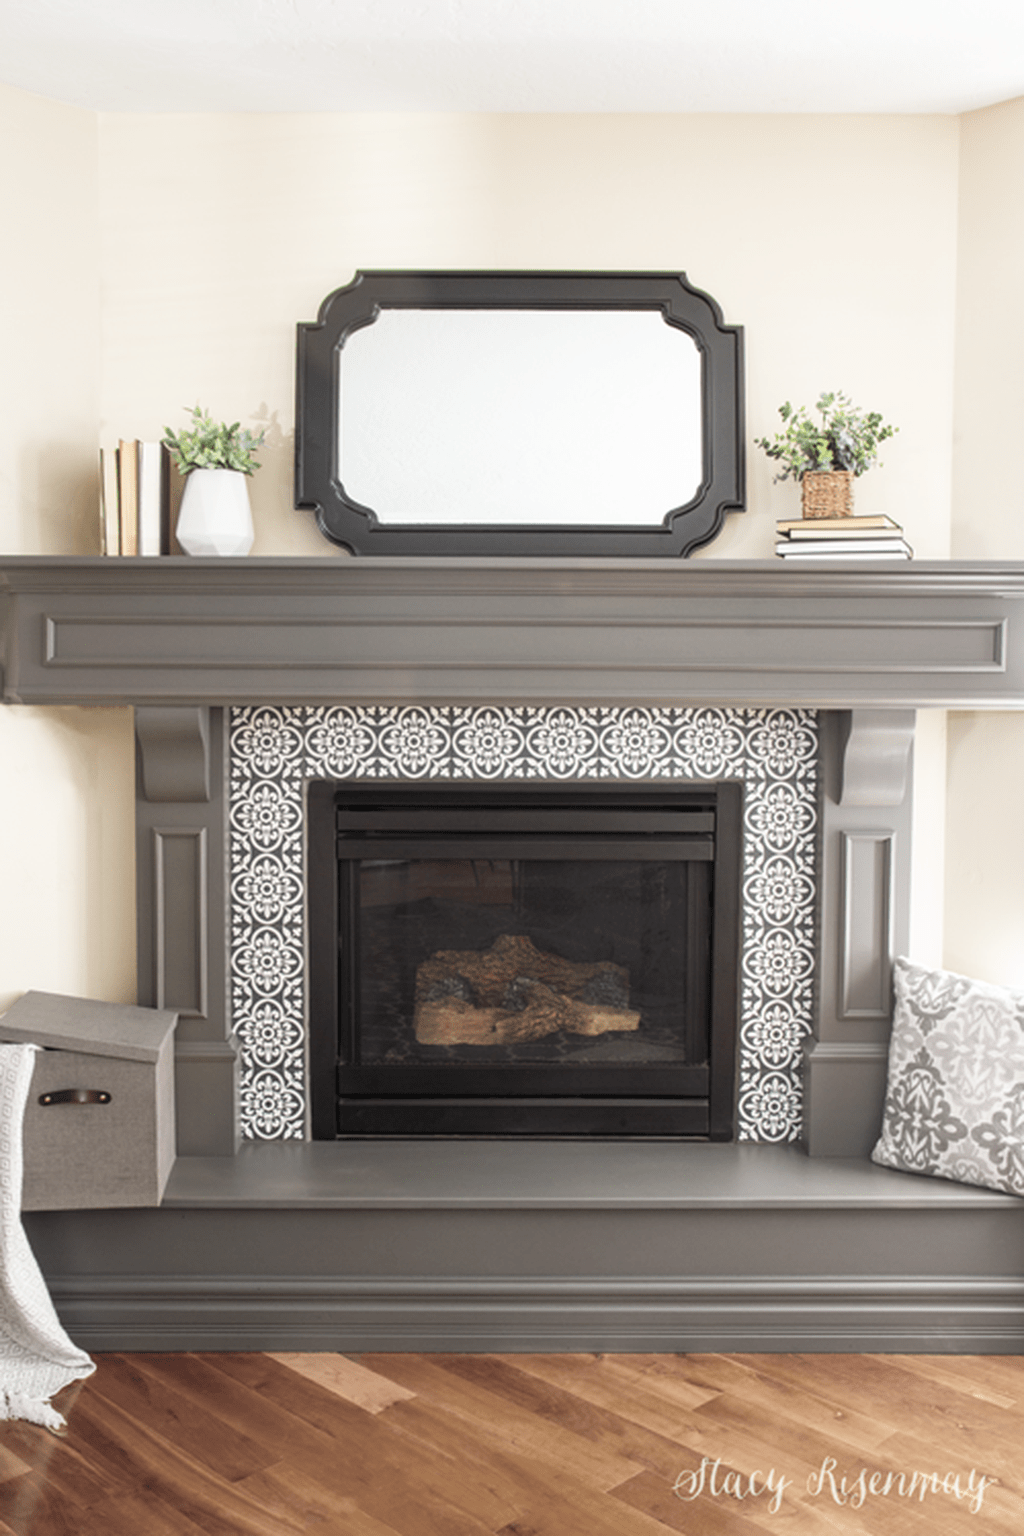 Stunning Fireplace Mantel Decor Ideas You Should Copy Now 07